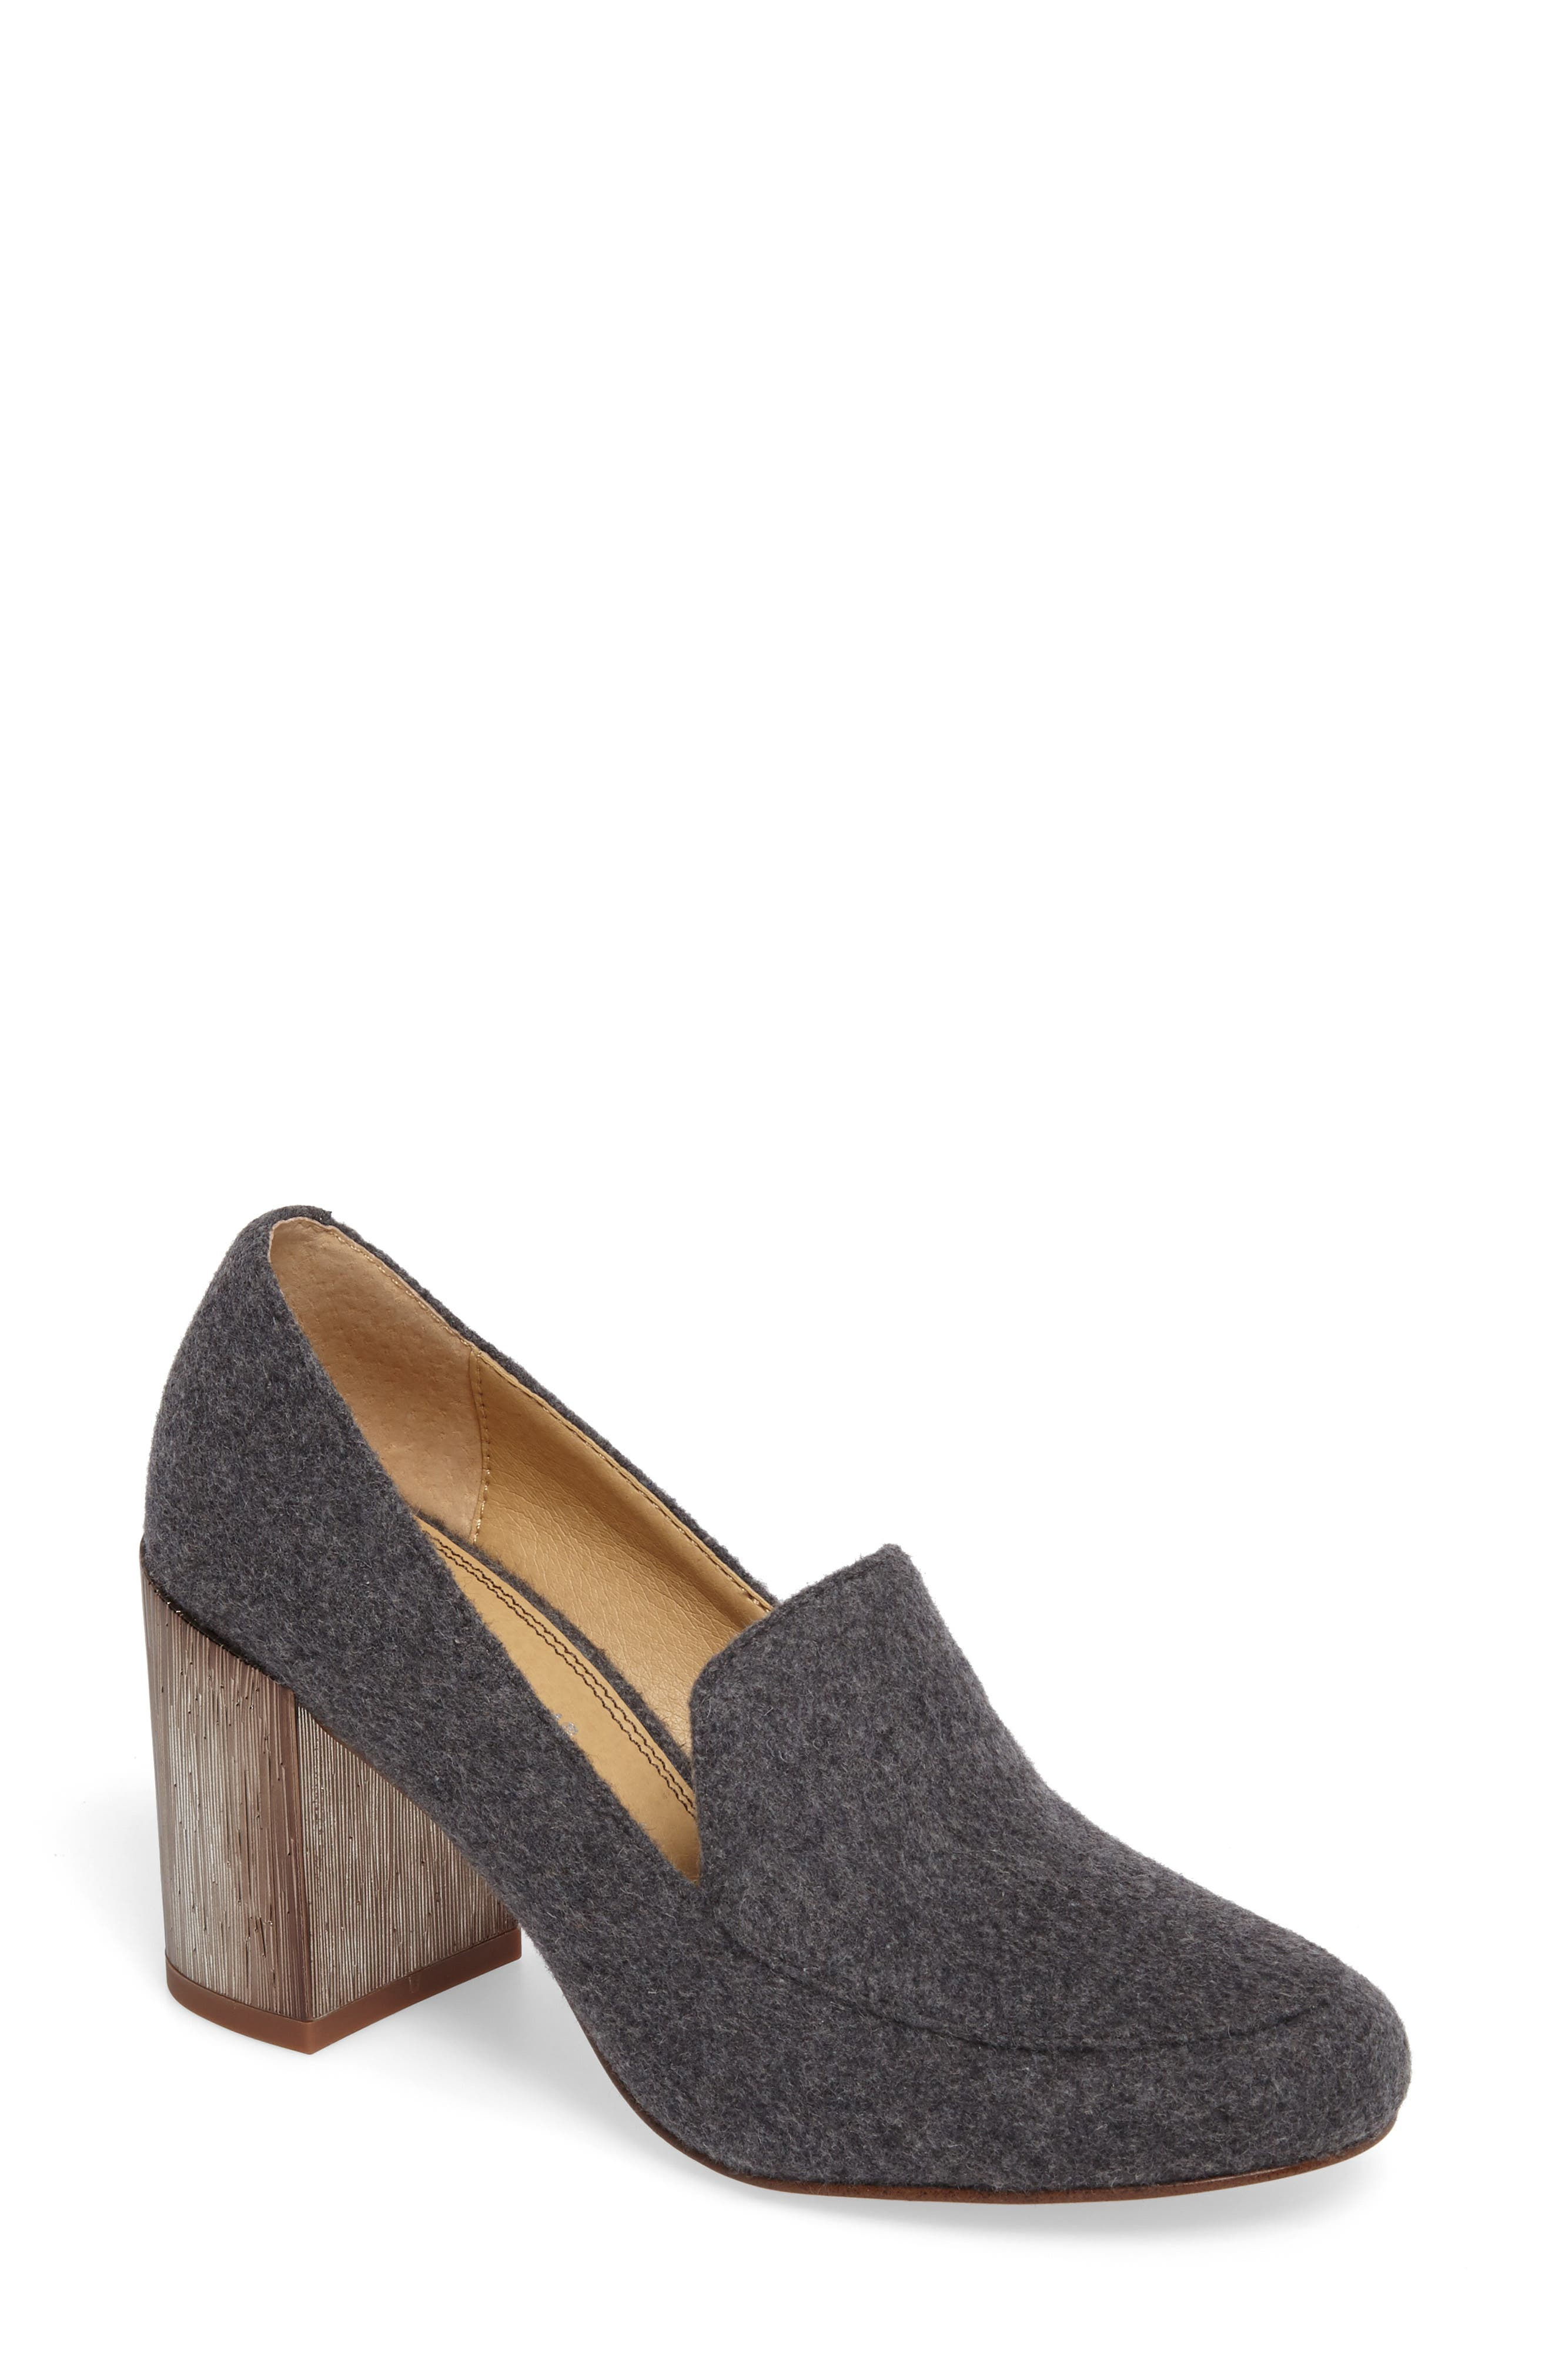 Main Image - Splendid Rosita II Loafer Pump (Women)